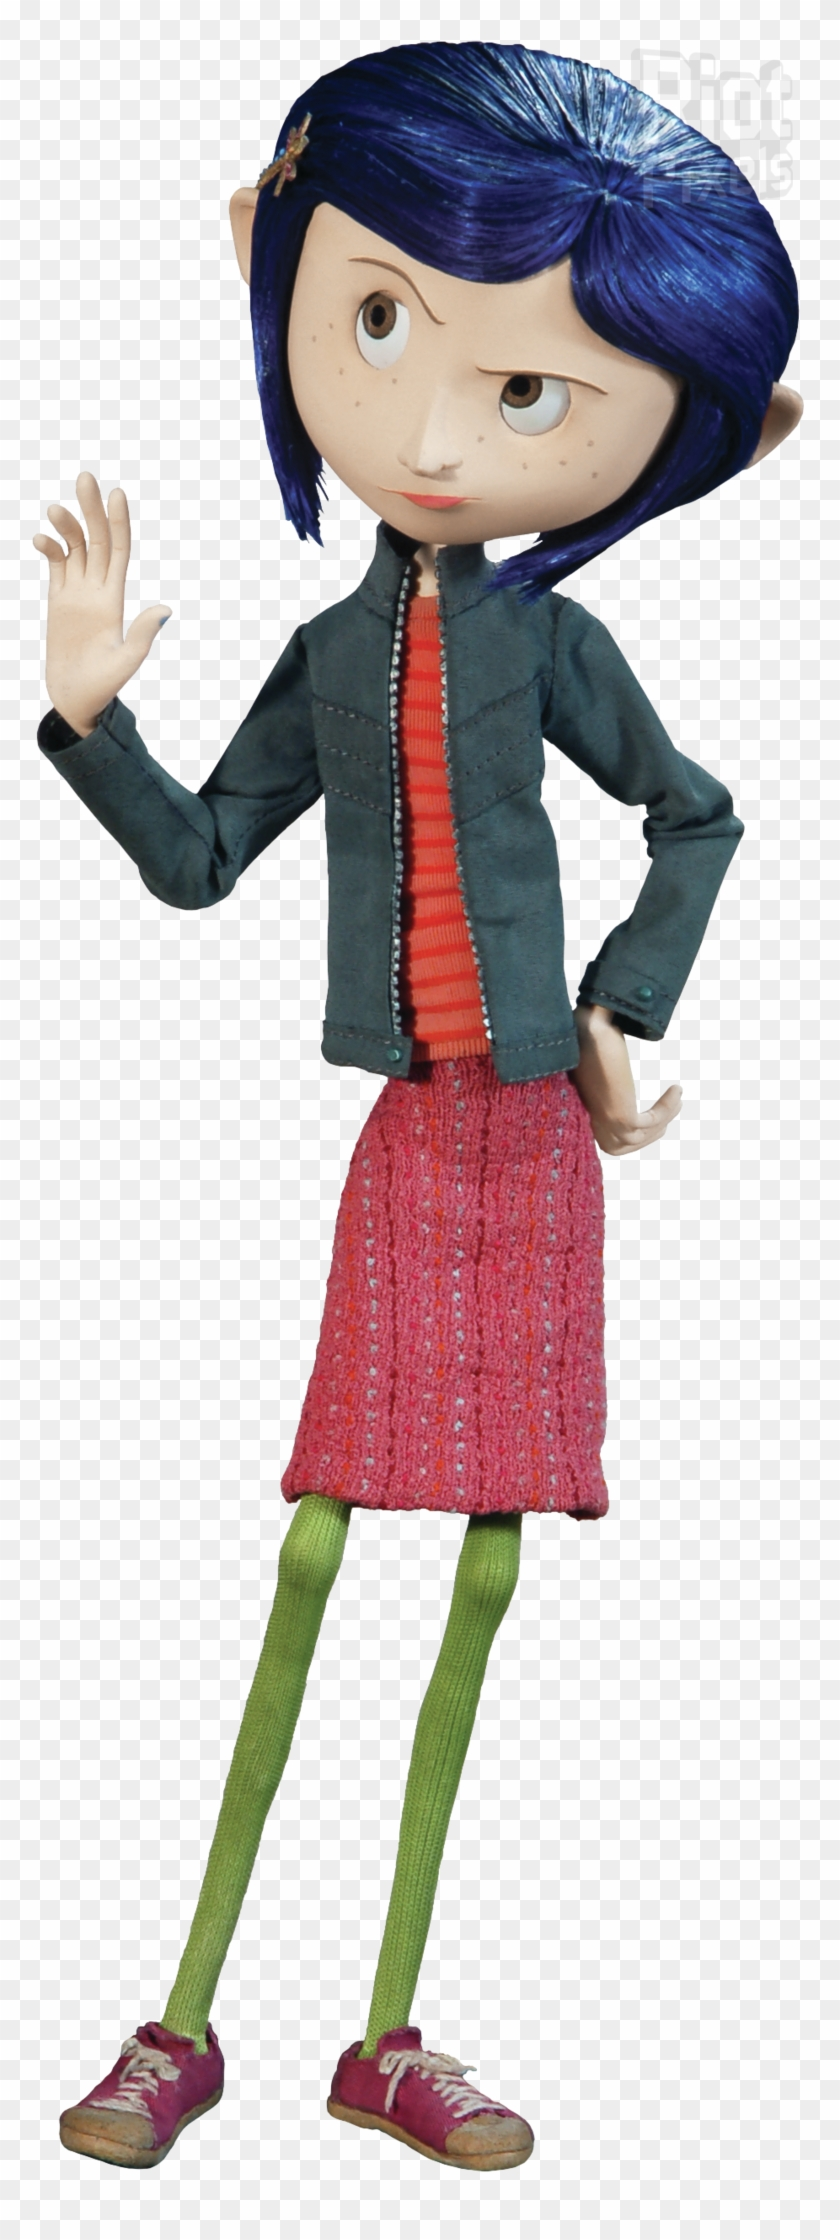 Coraline Coraline All Outfits Clipart 5351733 Pikpng